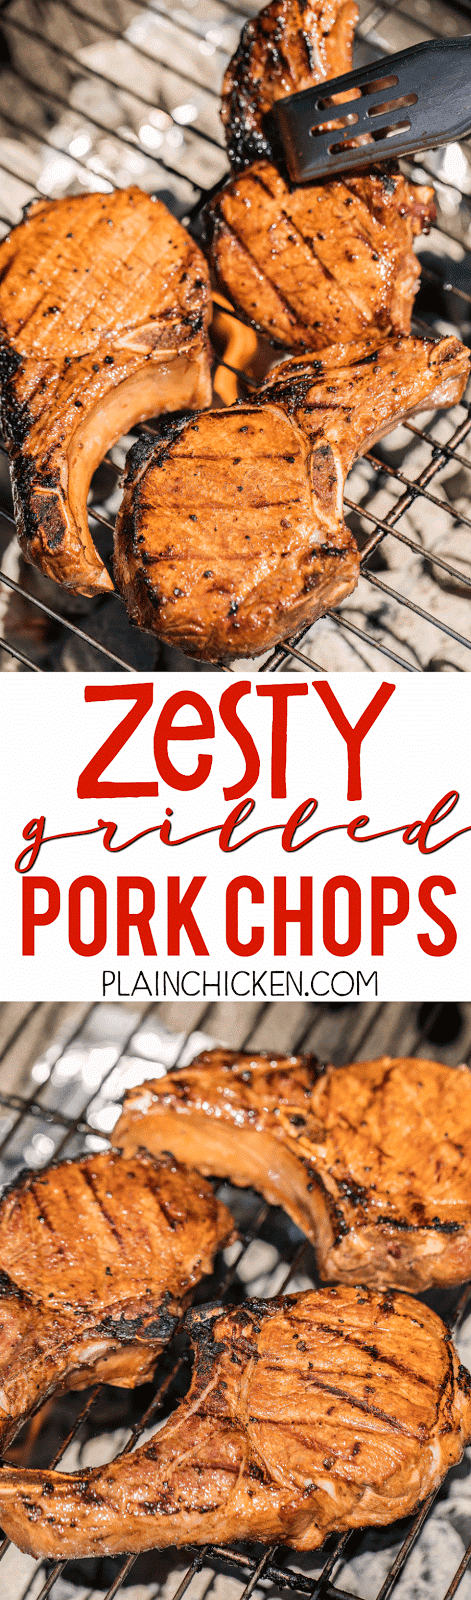 Zesty Grilled Pork Chops - better than any restaurant!!! Pork chops marinated in soy sauce, lemon juice, chili sauce, brown sugar and garlic. A little sweet and a little tangy. Perfect! Marinate overnight and grill for the perfect dinner! SO easy and everyone RAVES about these pork chops!!